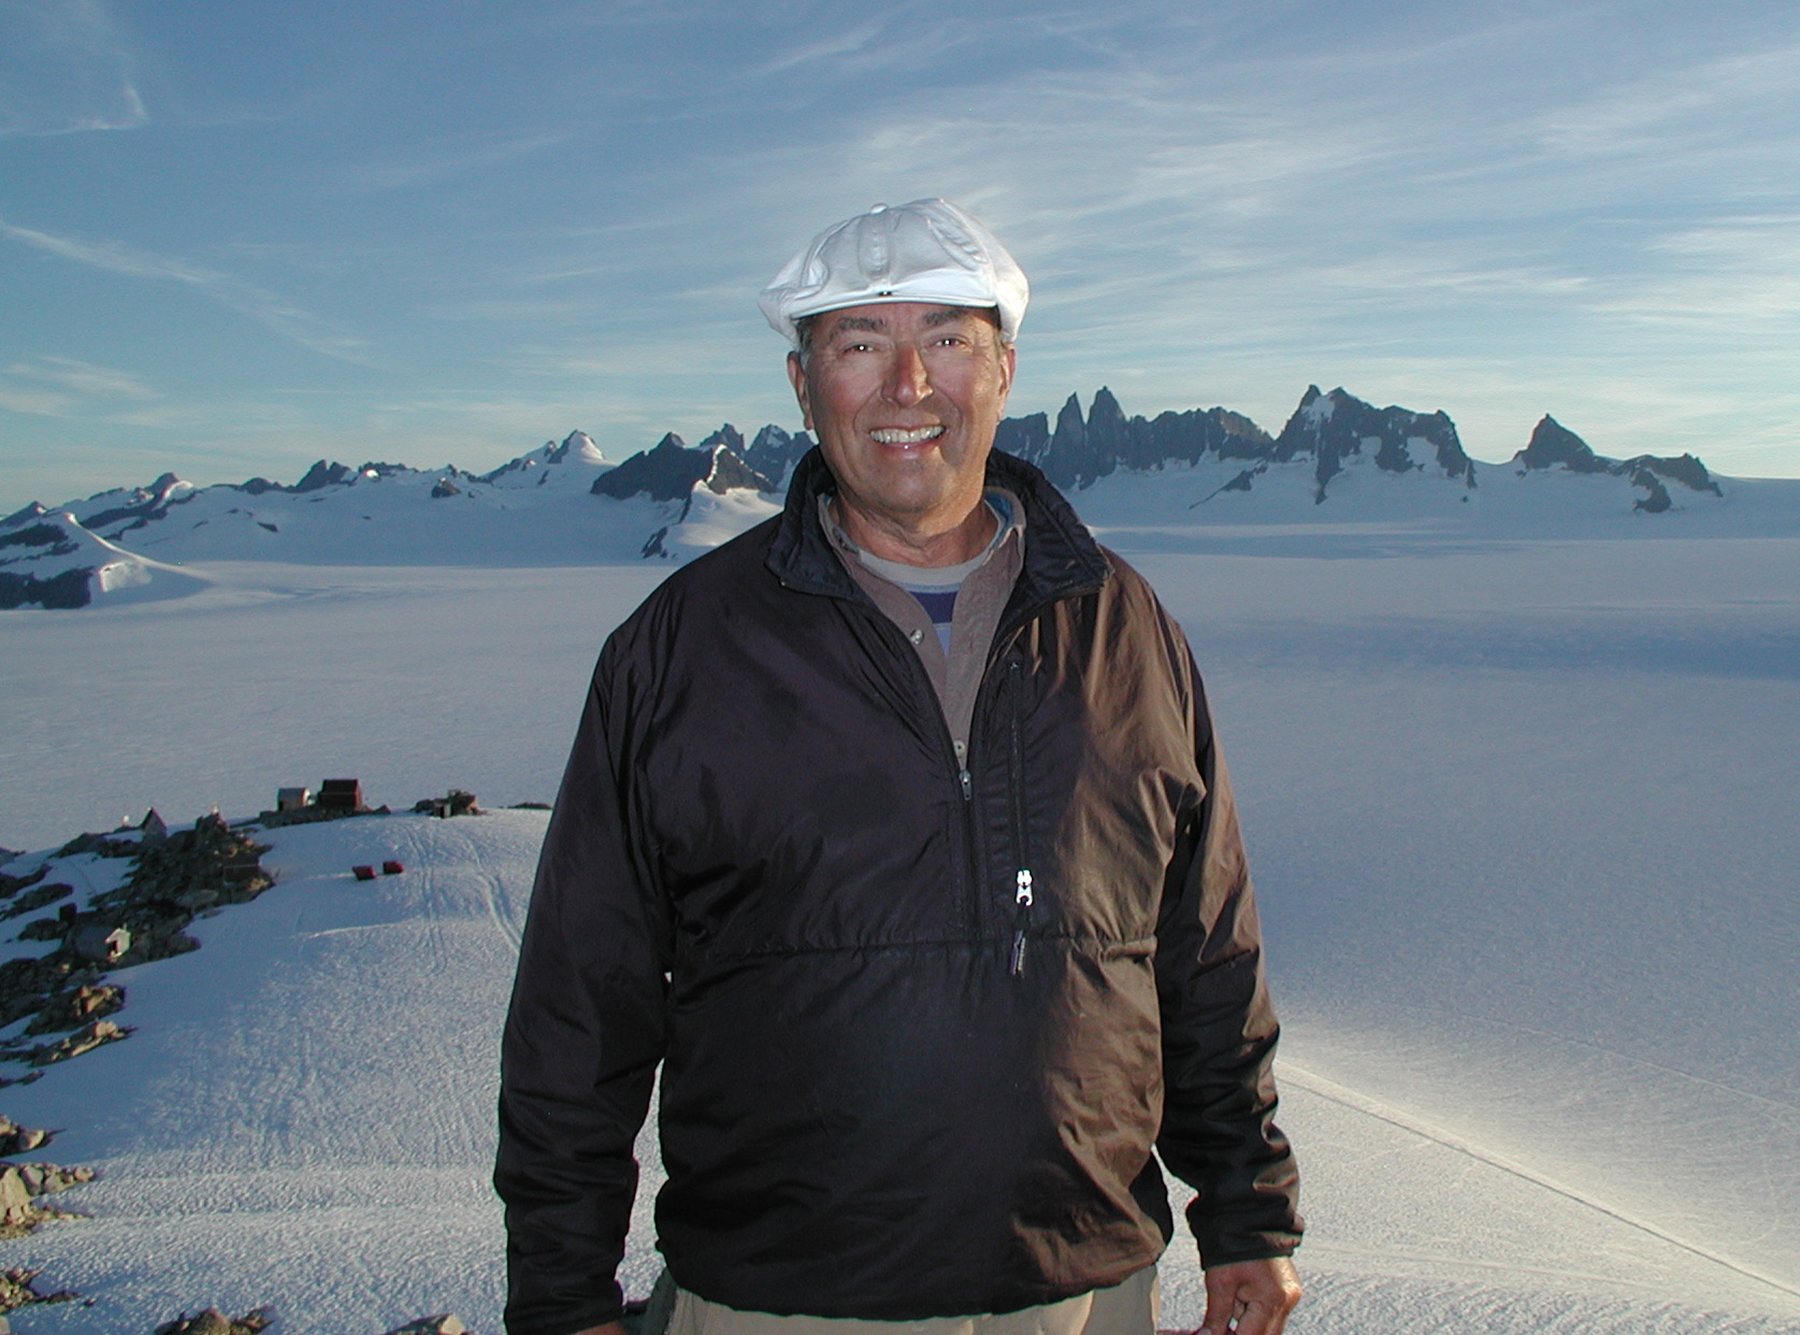 Dittrich is working with other scientists to assess the type and quantity of black carbon and minerals in the snow of the Juneau icefield to measure glacier mass loss due to the darkening of the snowpack.